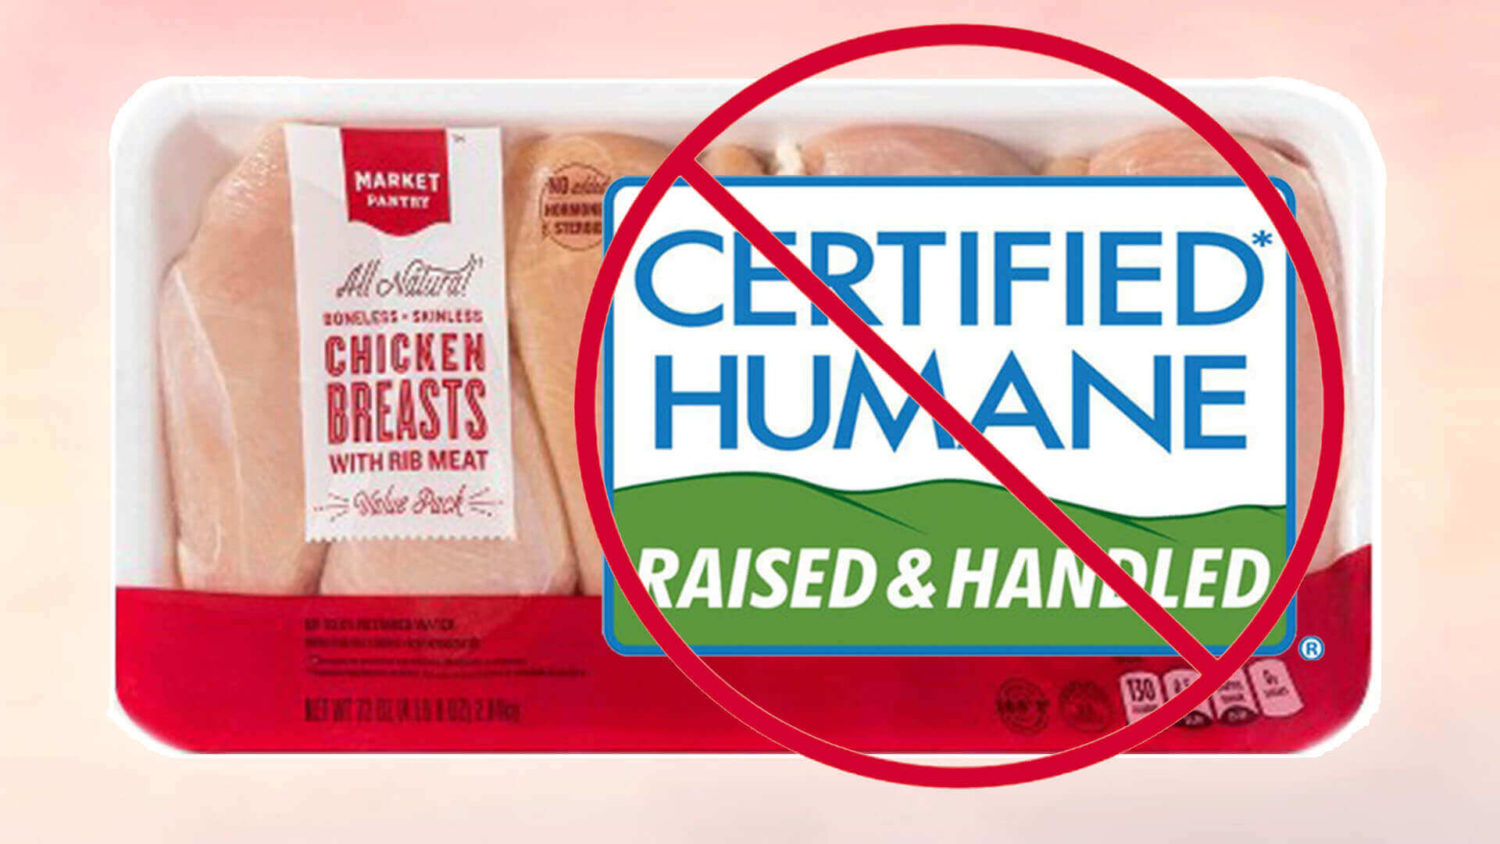 Australia May Ban 'Certified Humane' Labels on Animal Products